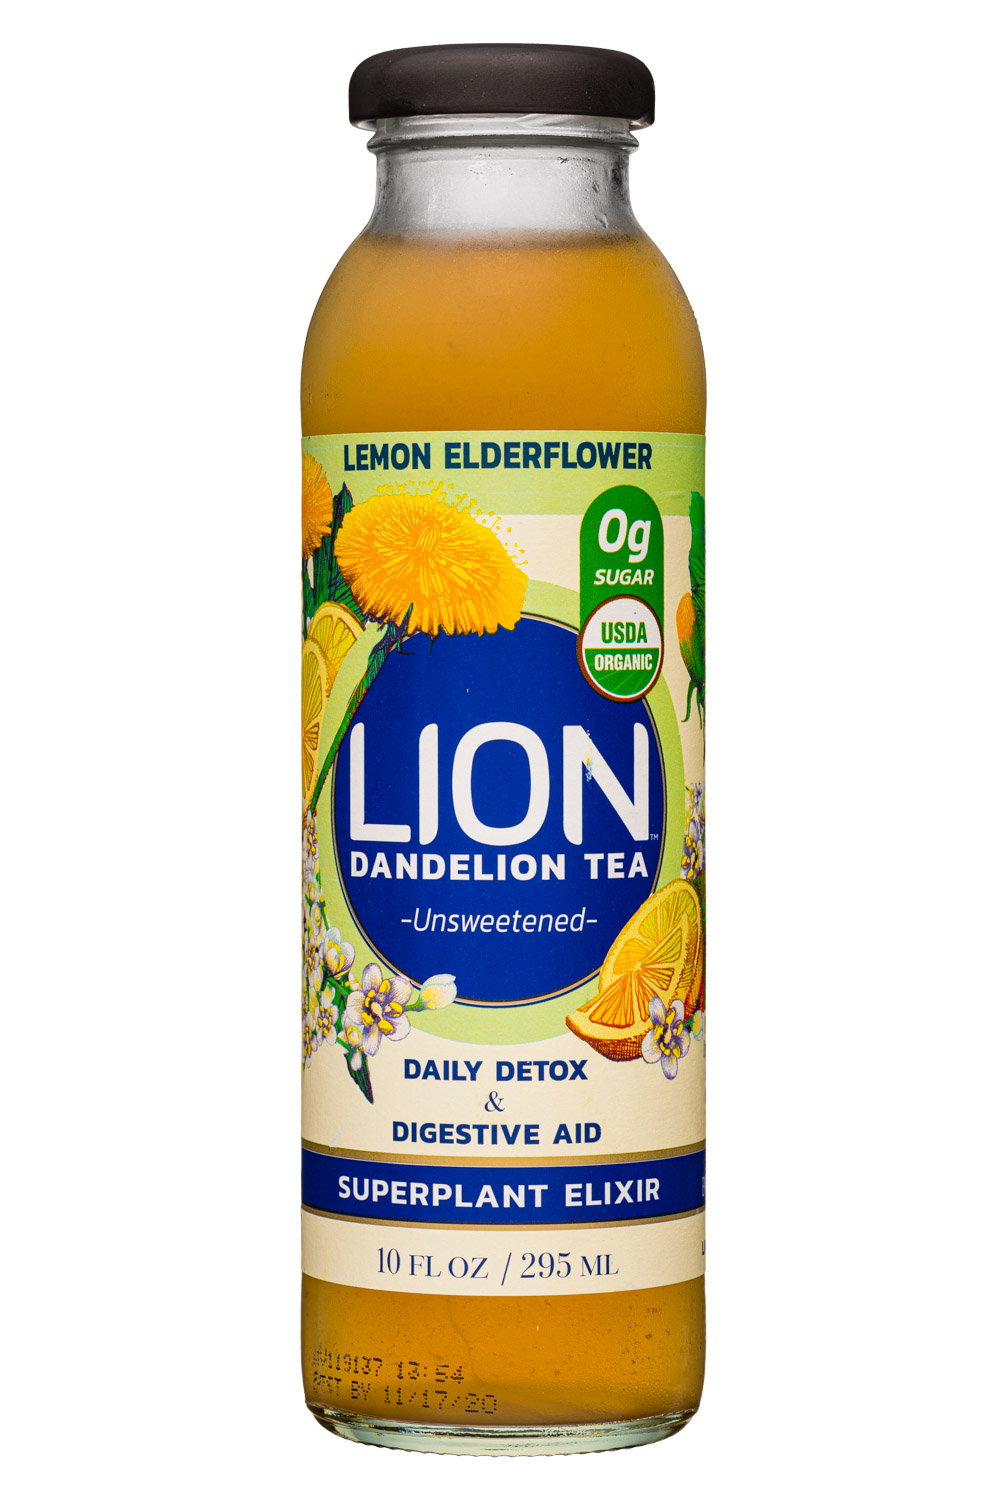 Lemon Elderflower